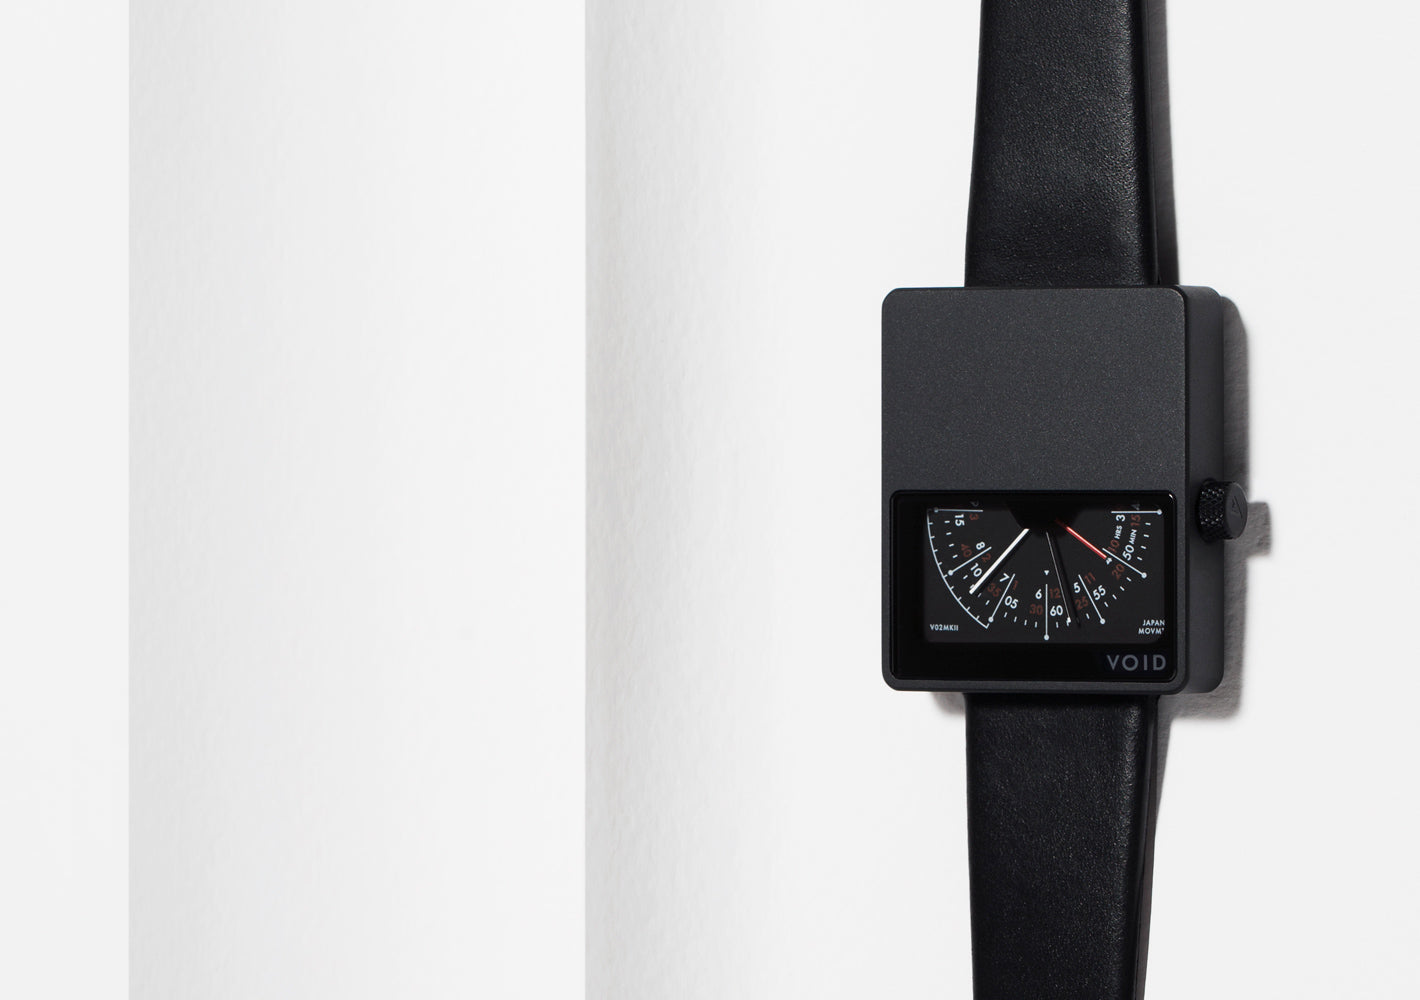 The V02MKII-BL/BL from VOID Watches, designed by David Ericsson.